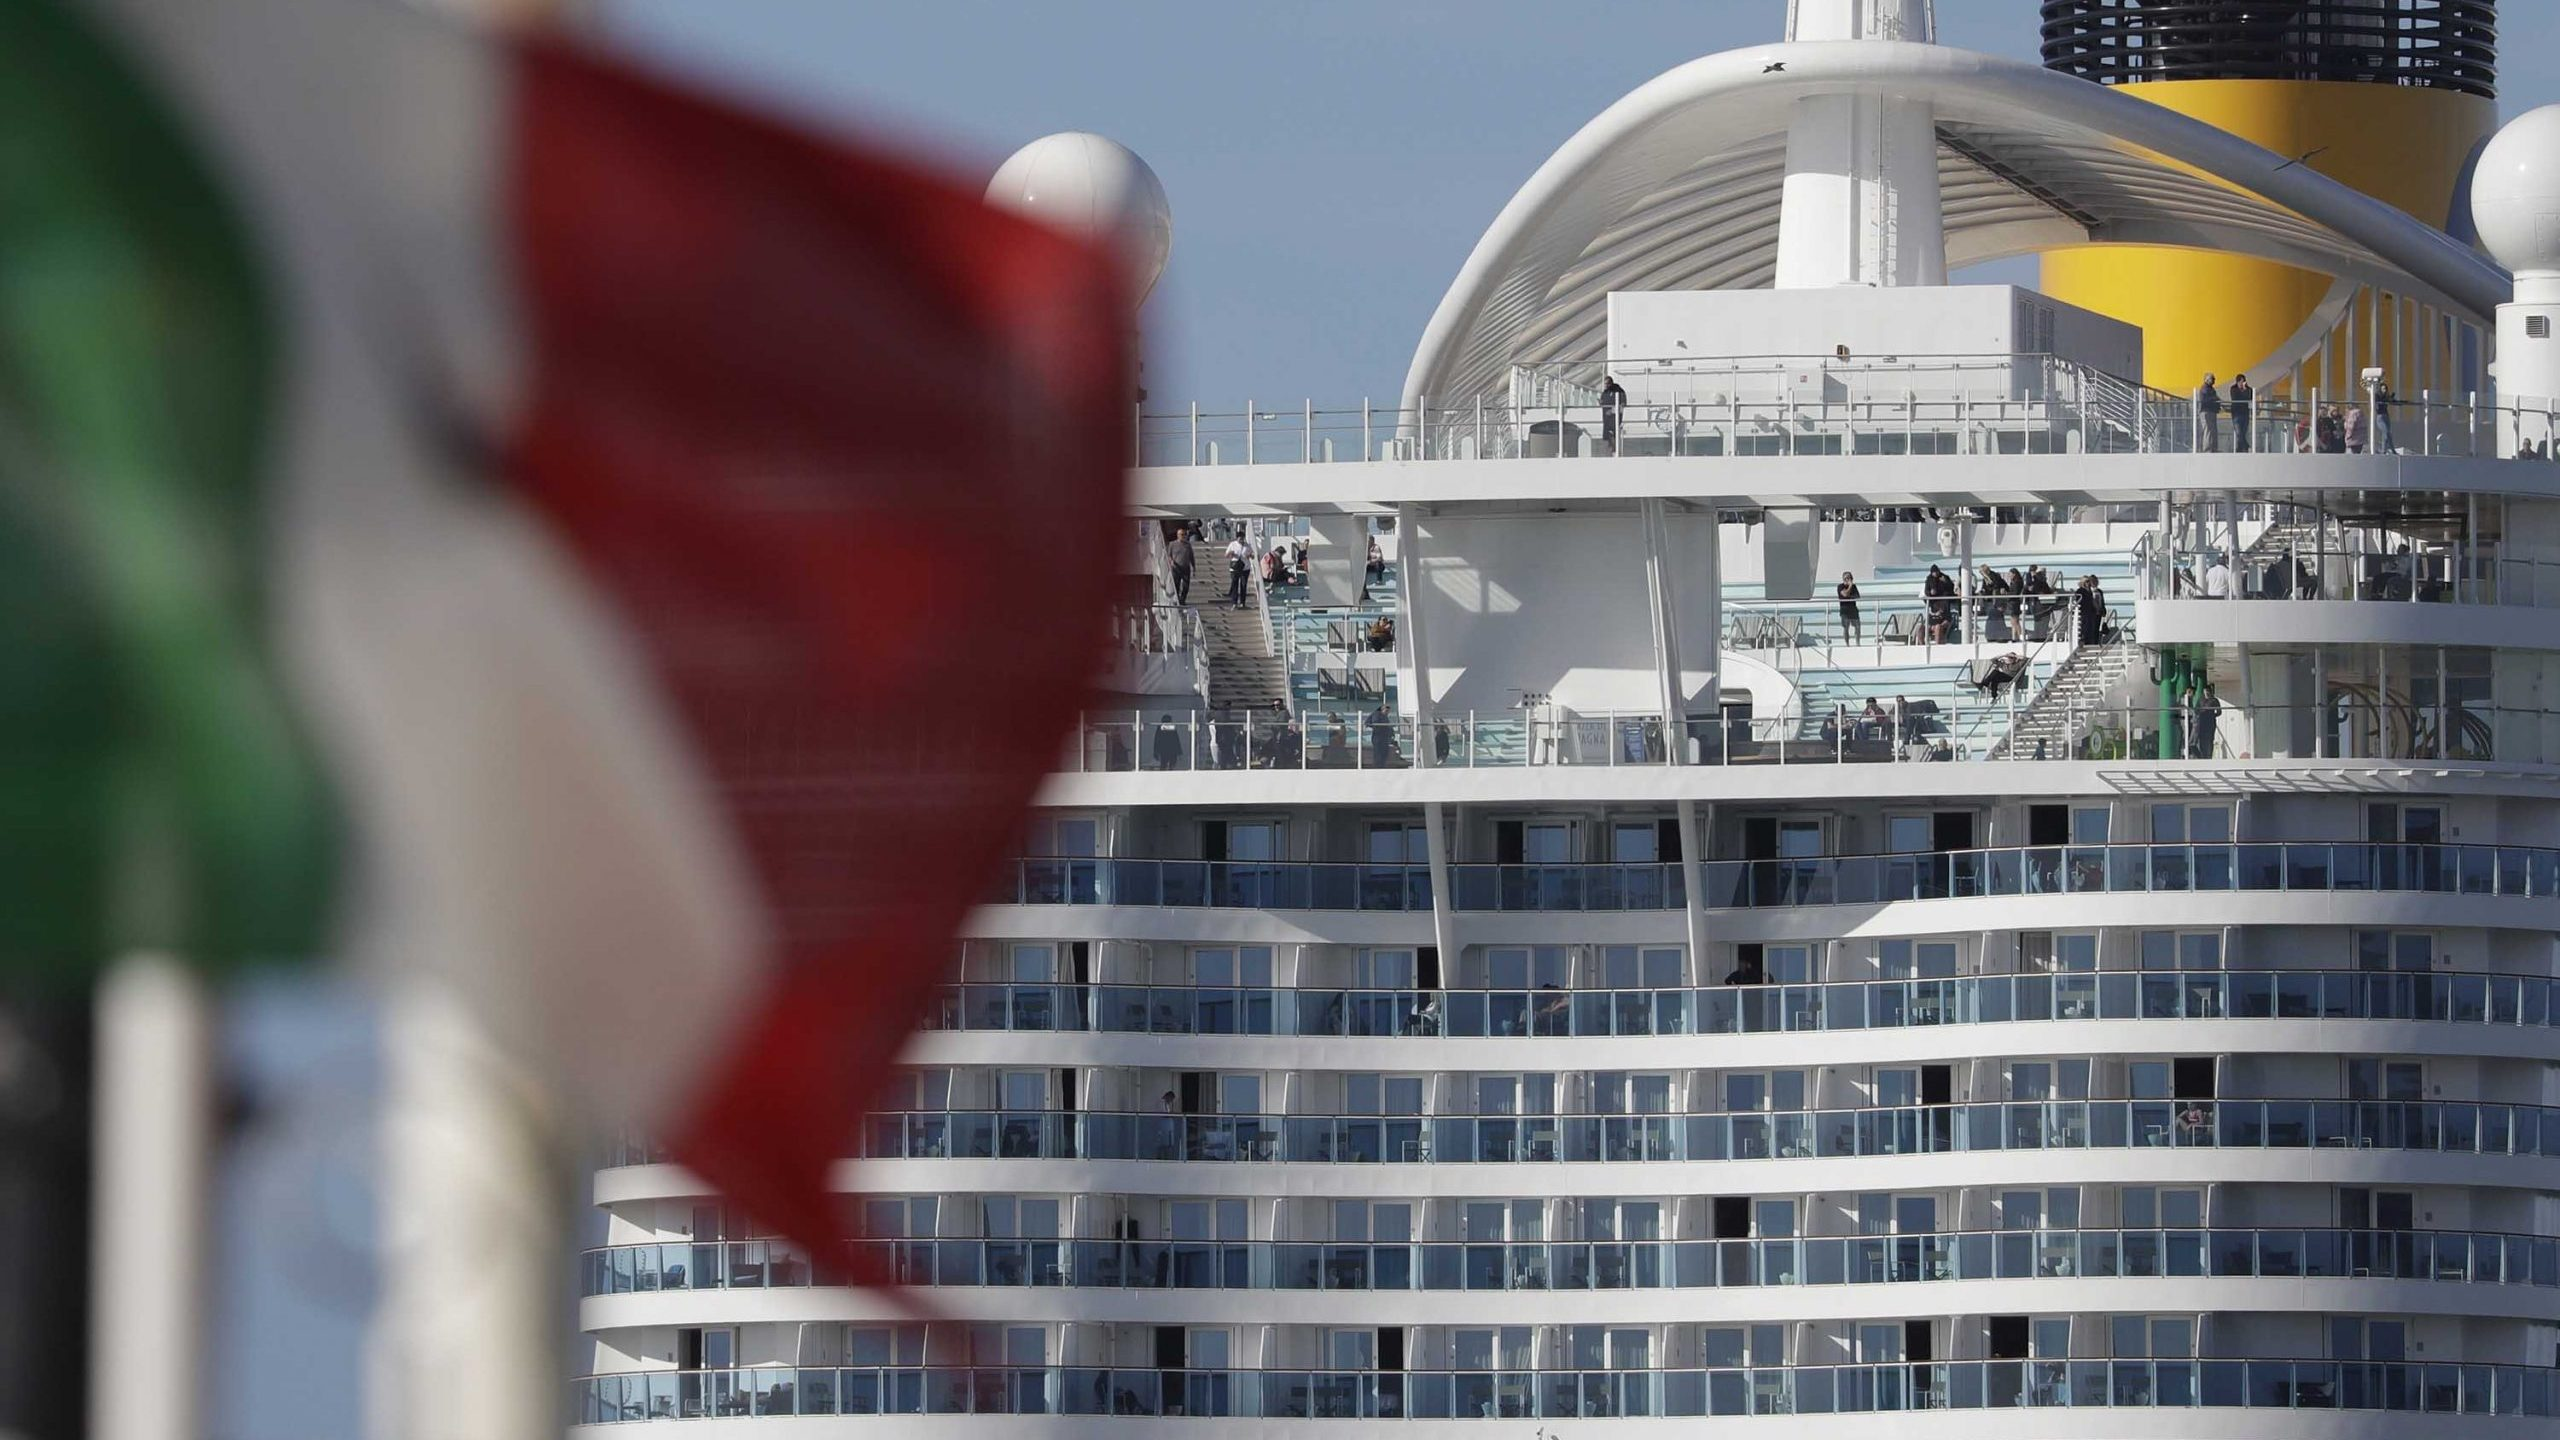 7,000 people held on cruise ship in Italy as Wuhan coronavirus ...